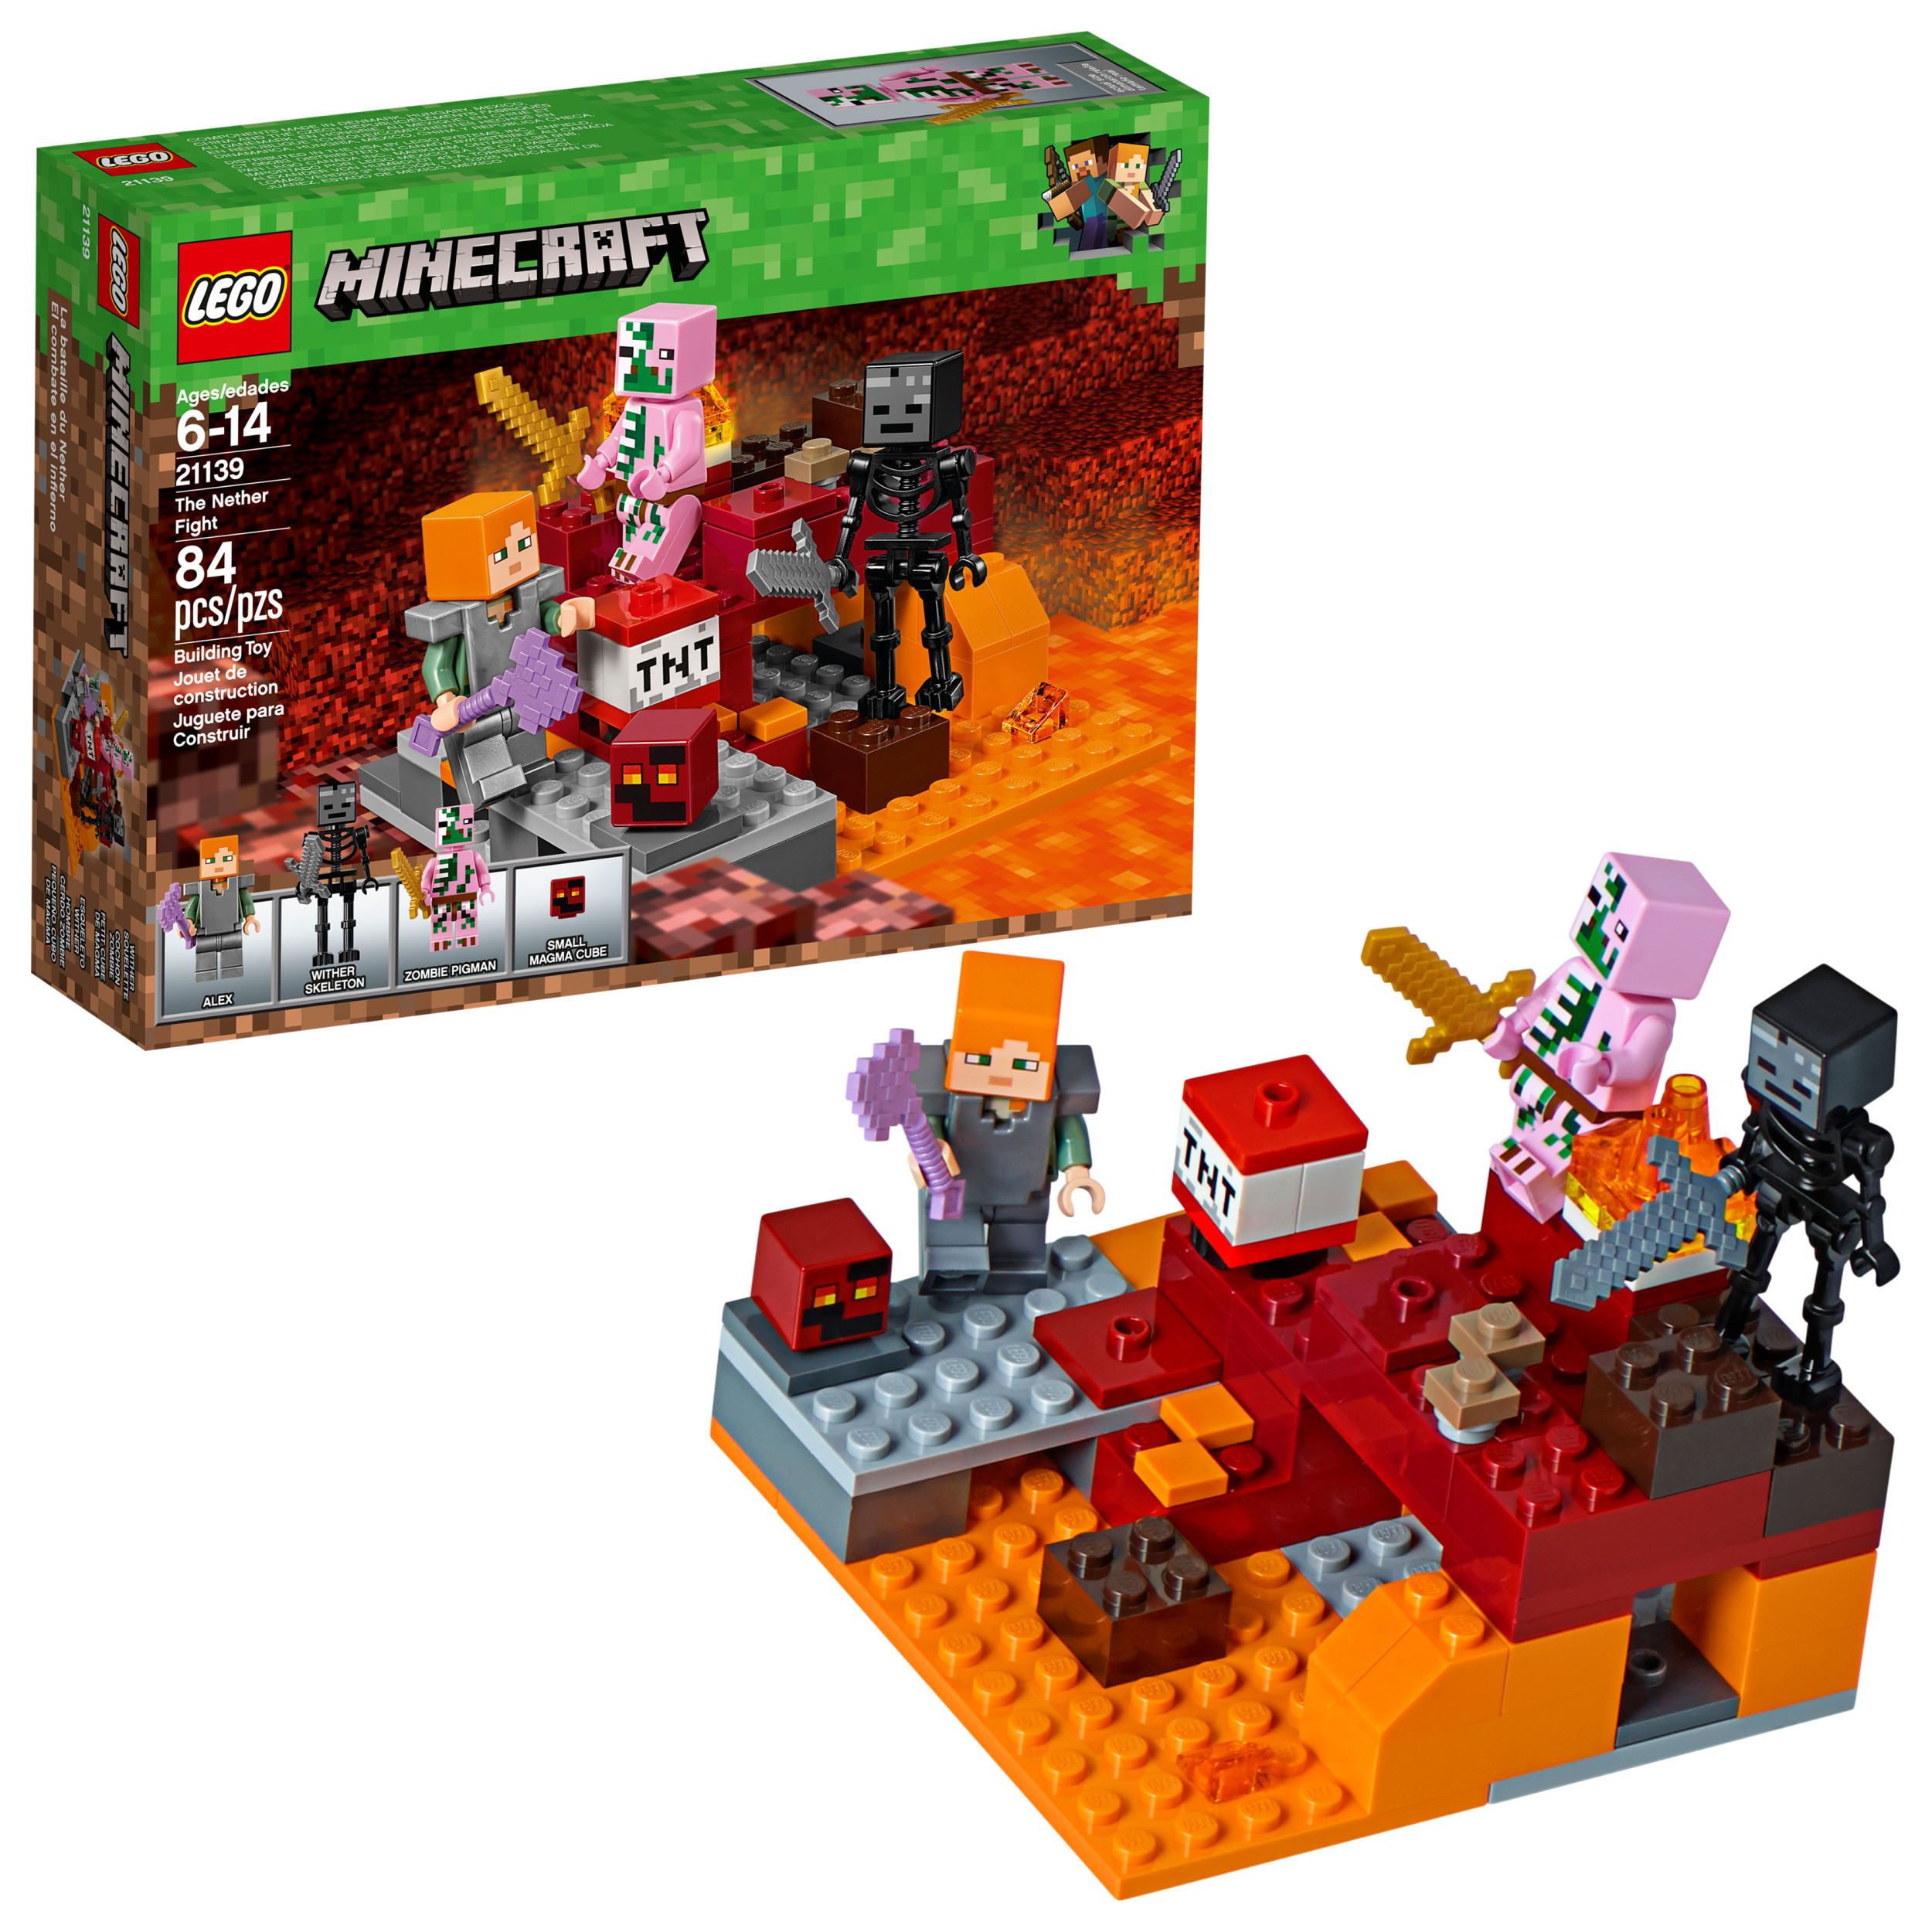 LEGO Minecraft™ The Nether Fight 21139 (84 Pieces)